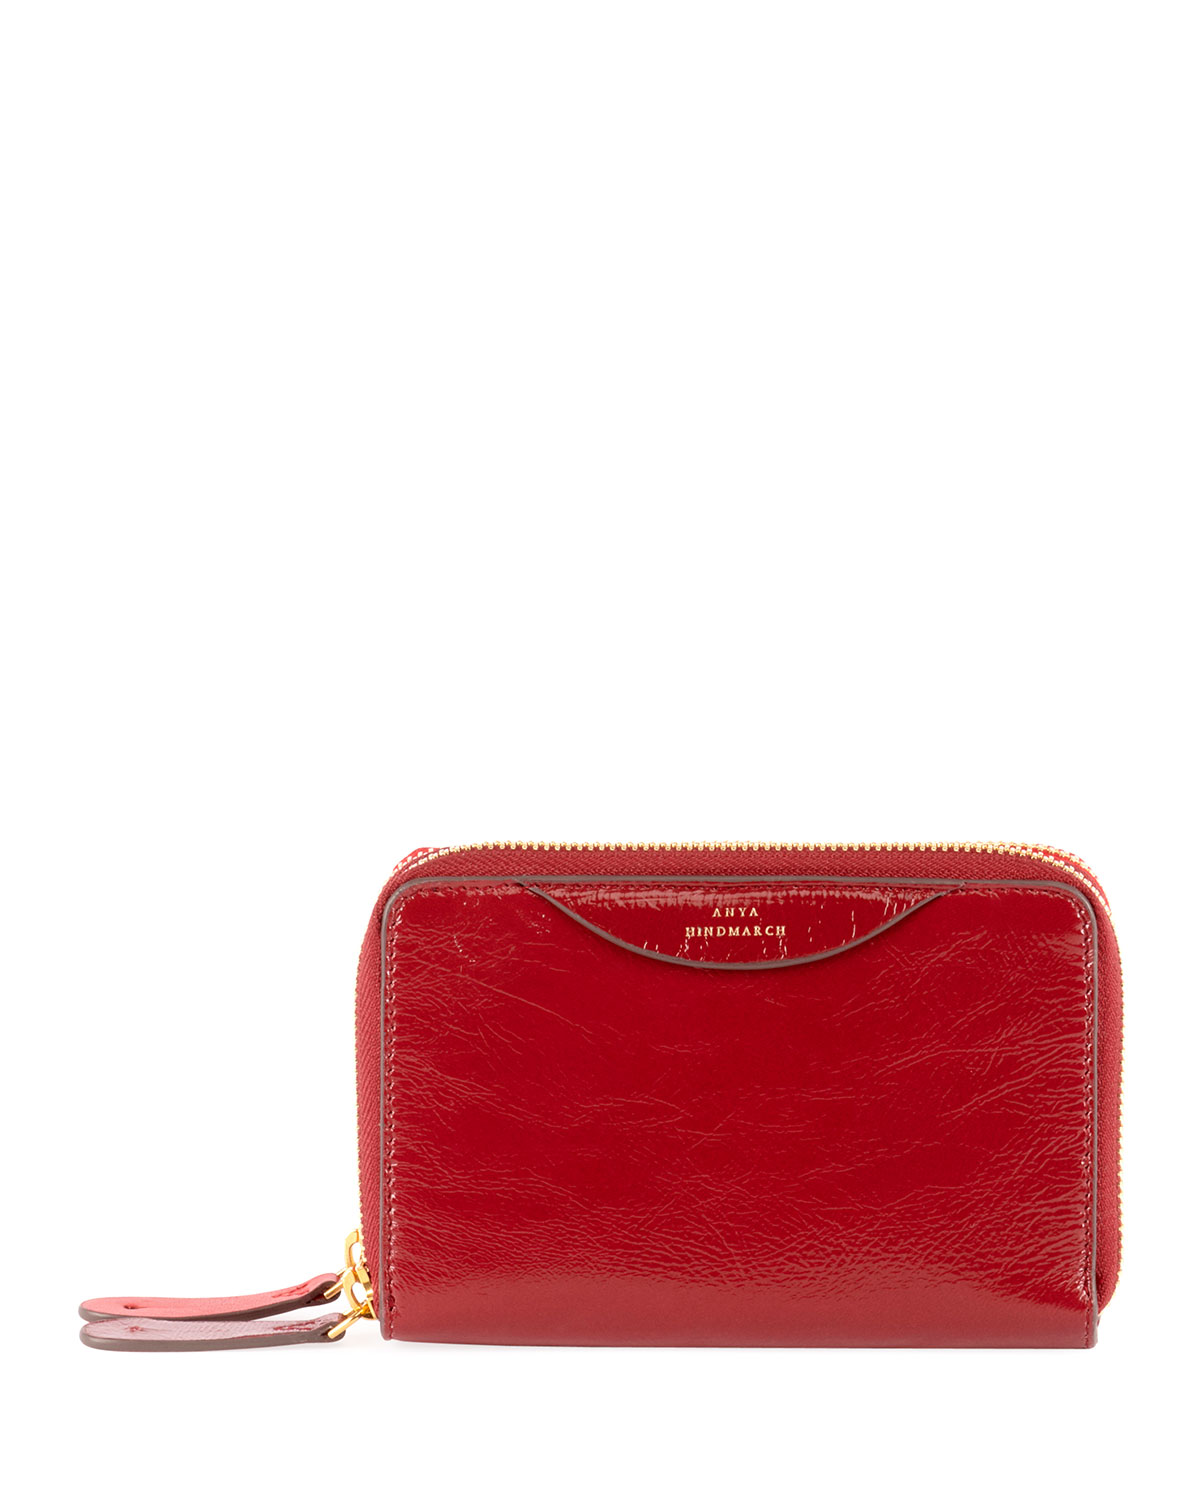 ANYA HINDMARCH STACK DOUBLE SHINY WALLET, RED